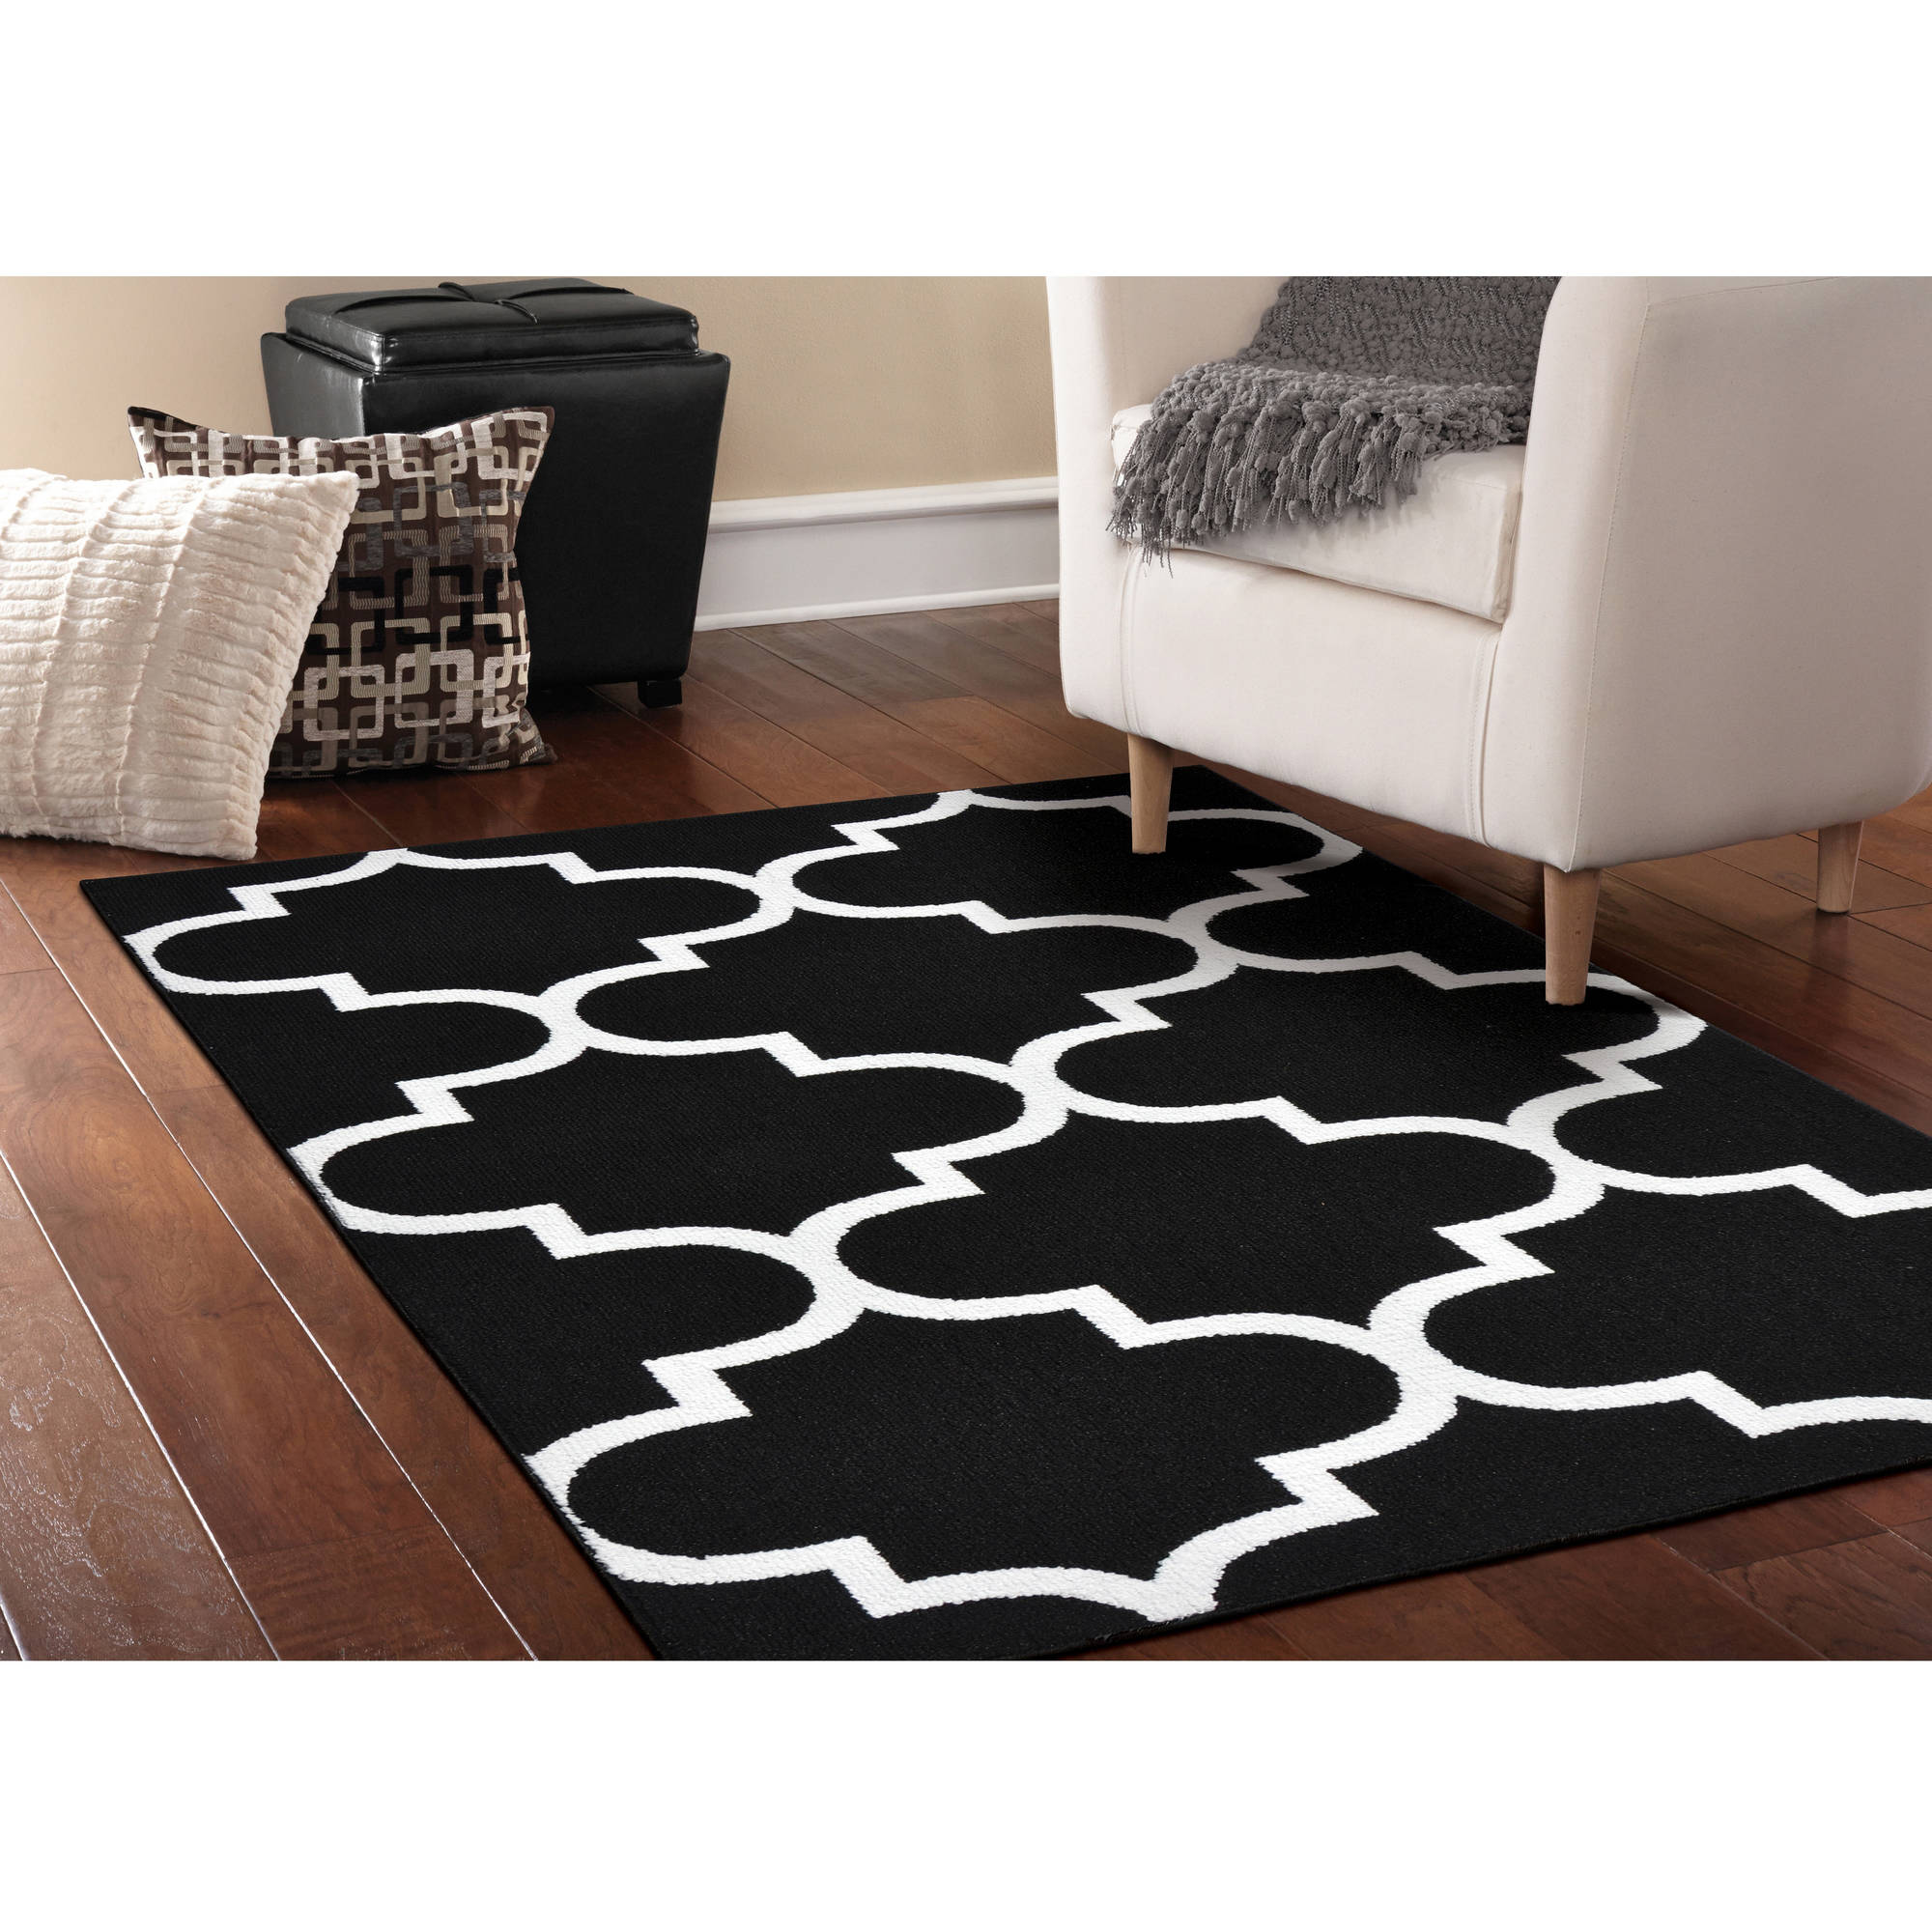 Large Quatrefoil Area Rug